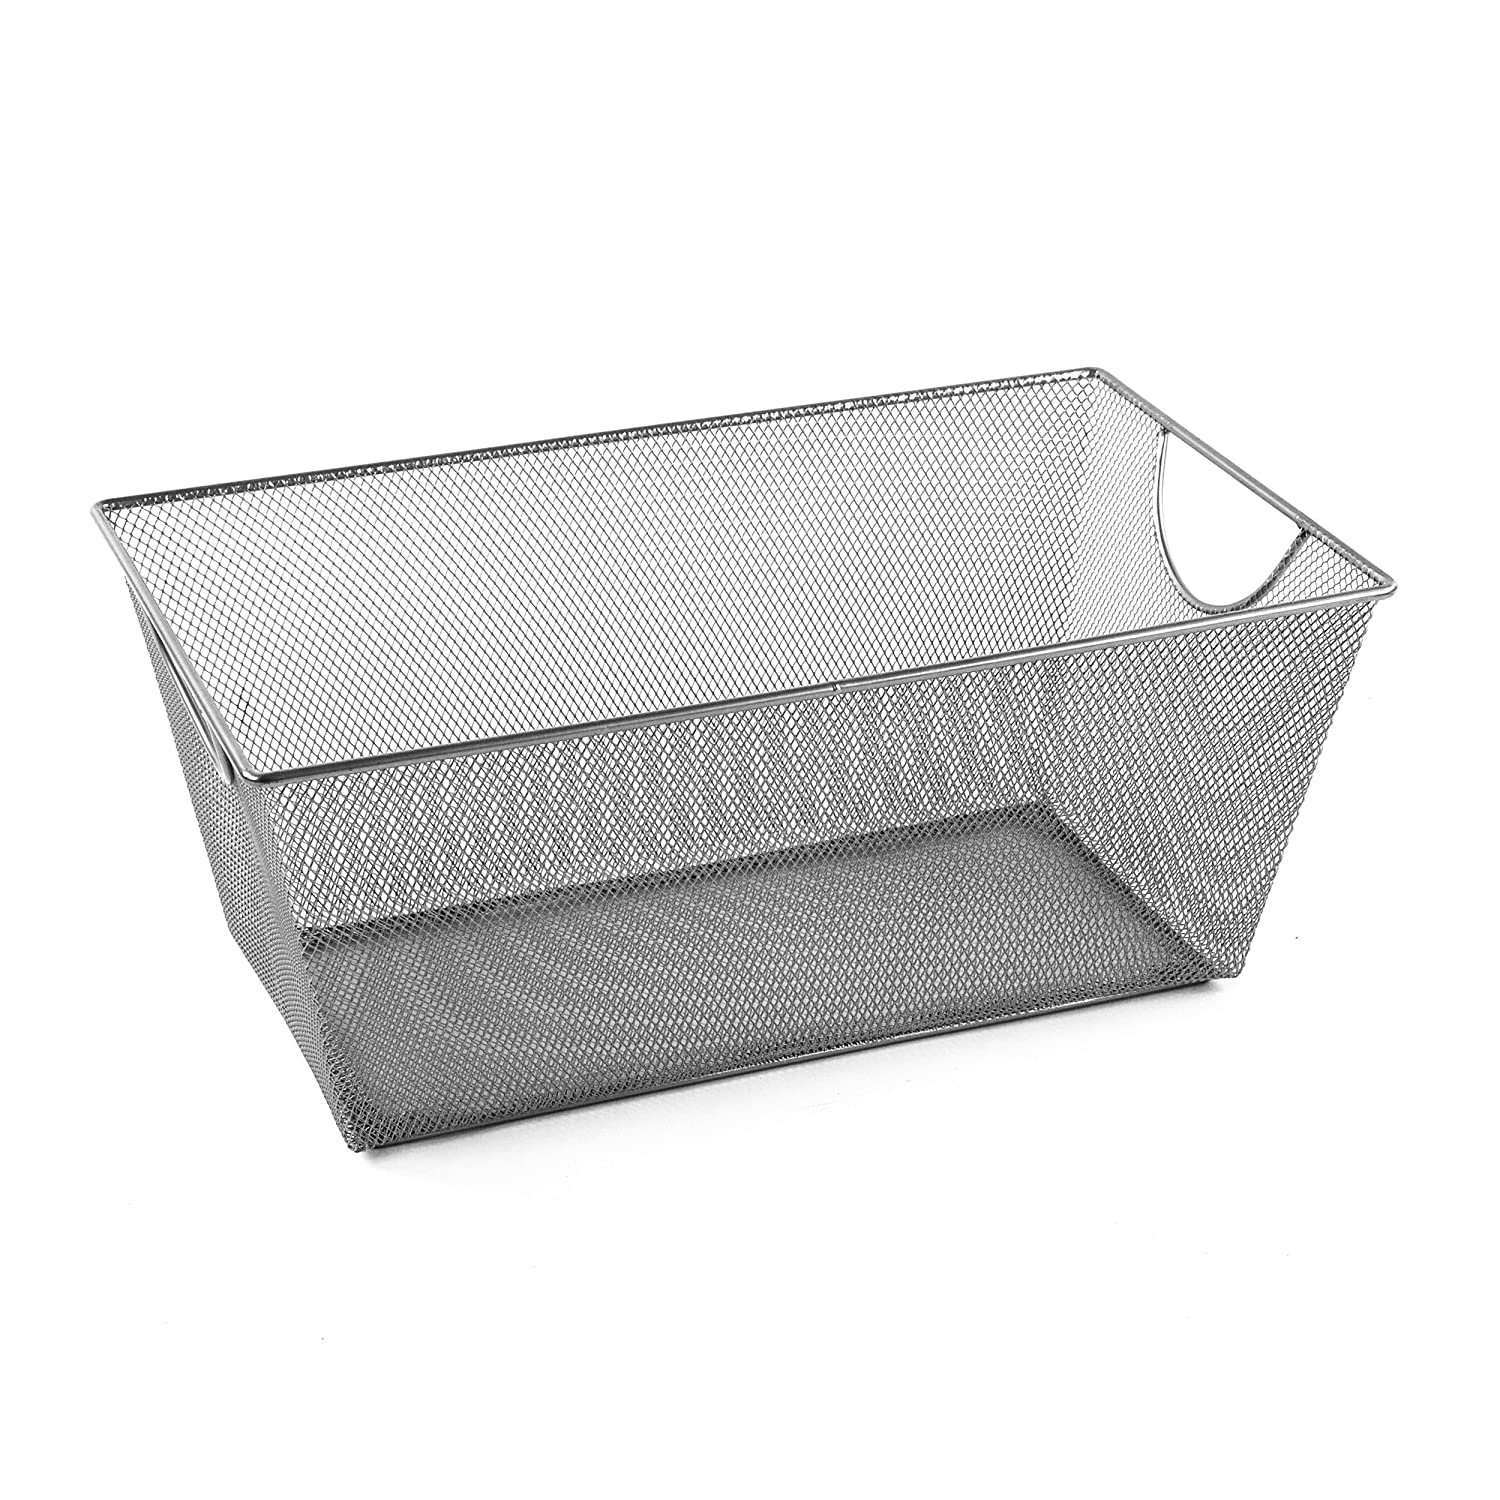 Amazon.com: Design Ideas Mesh Storage Nest, Silver, Long: Home & Kitchen